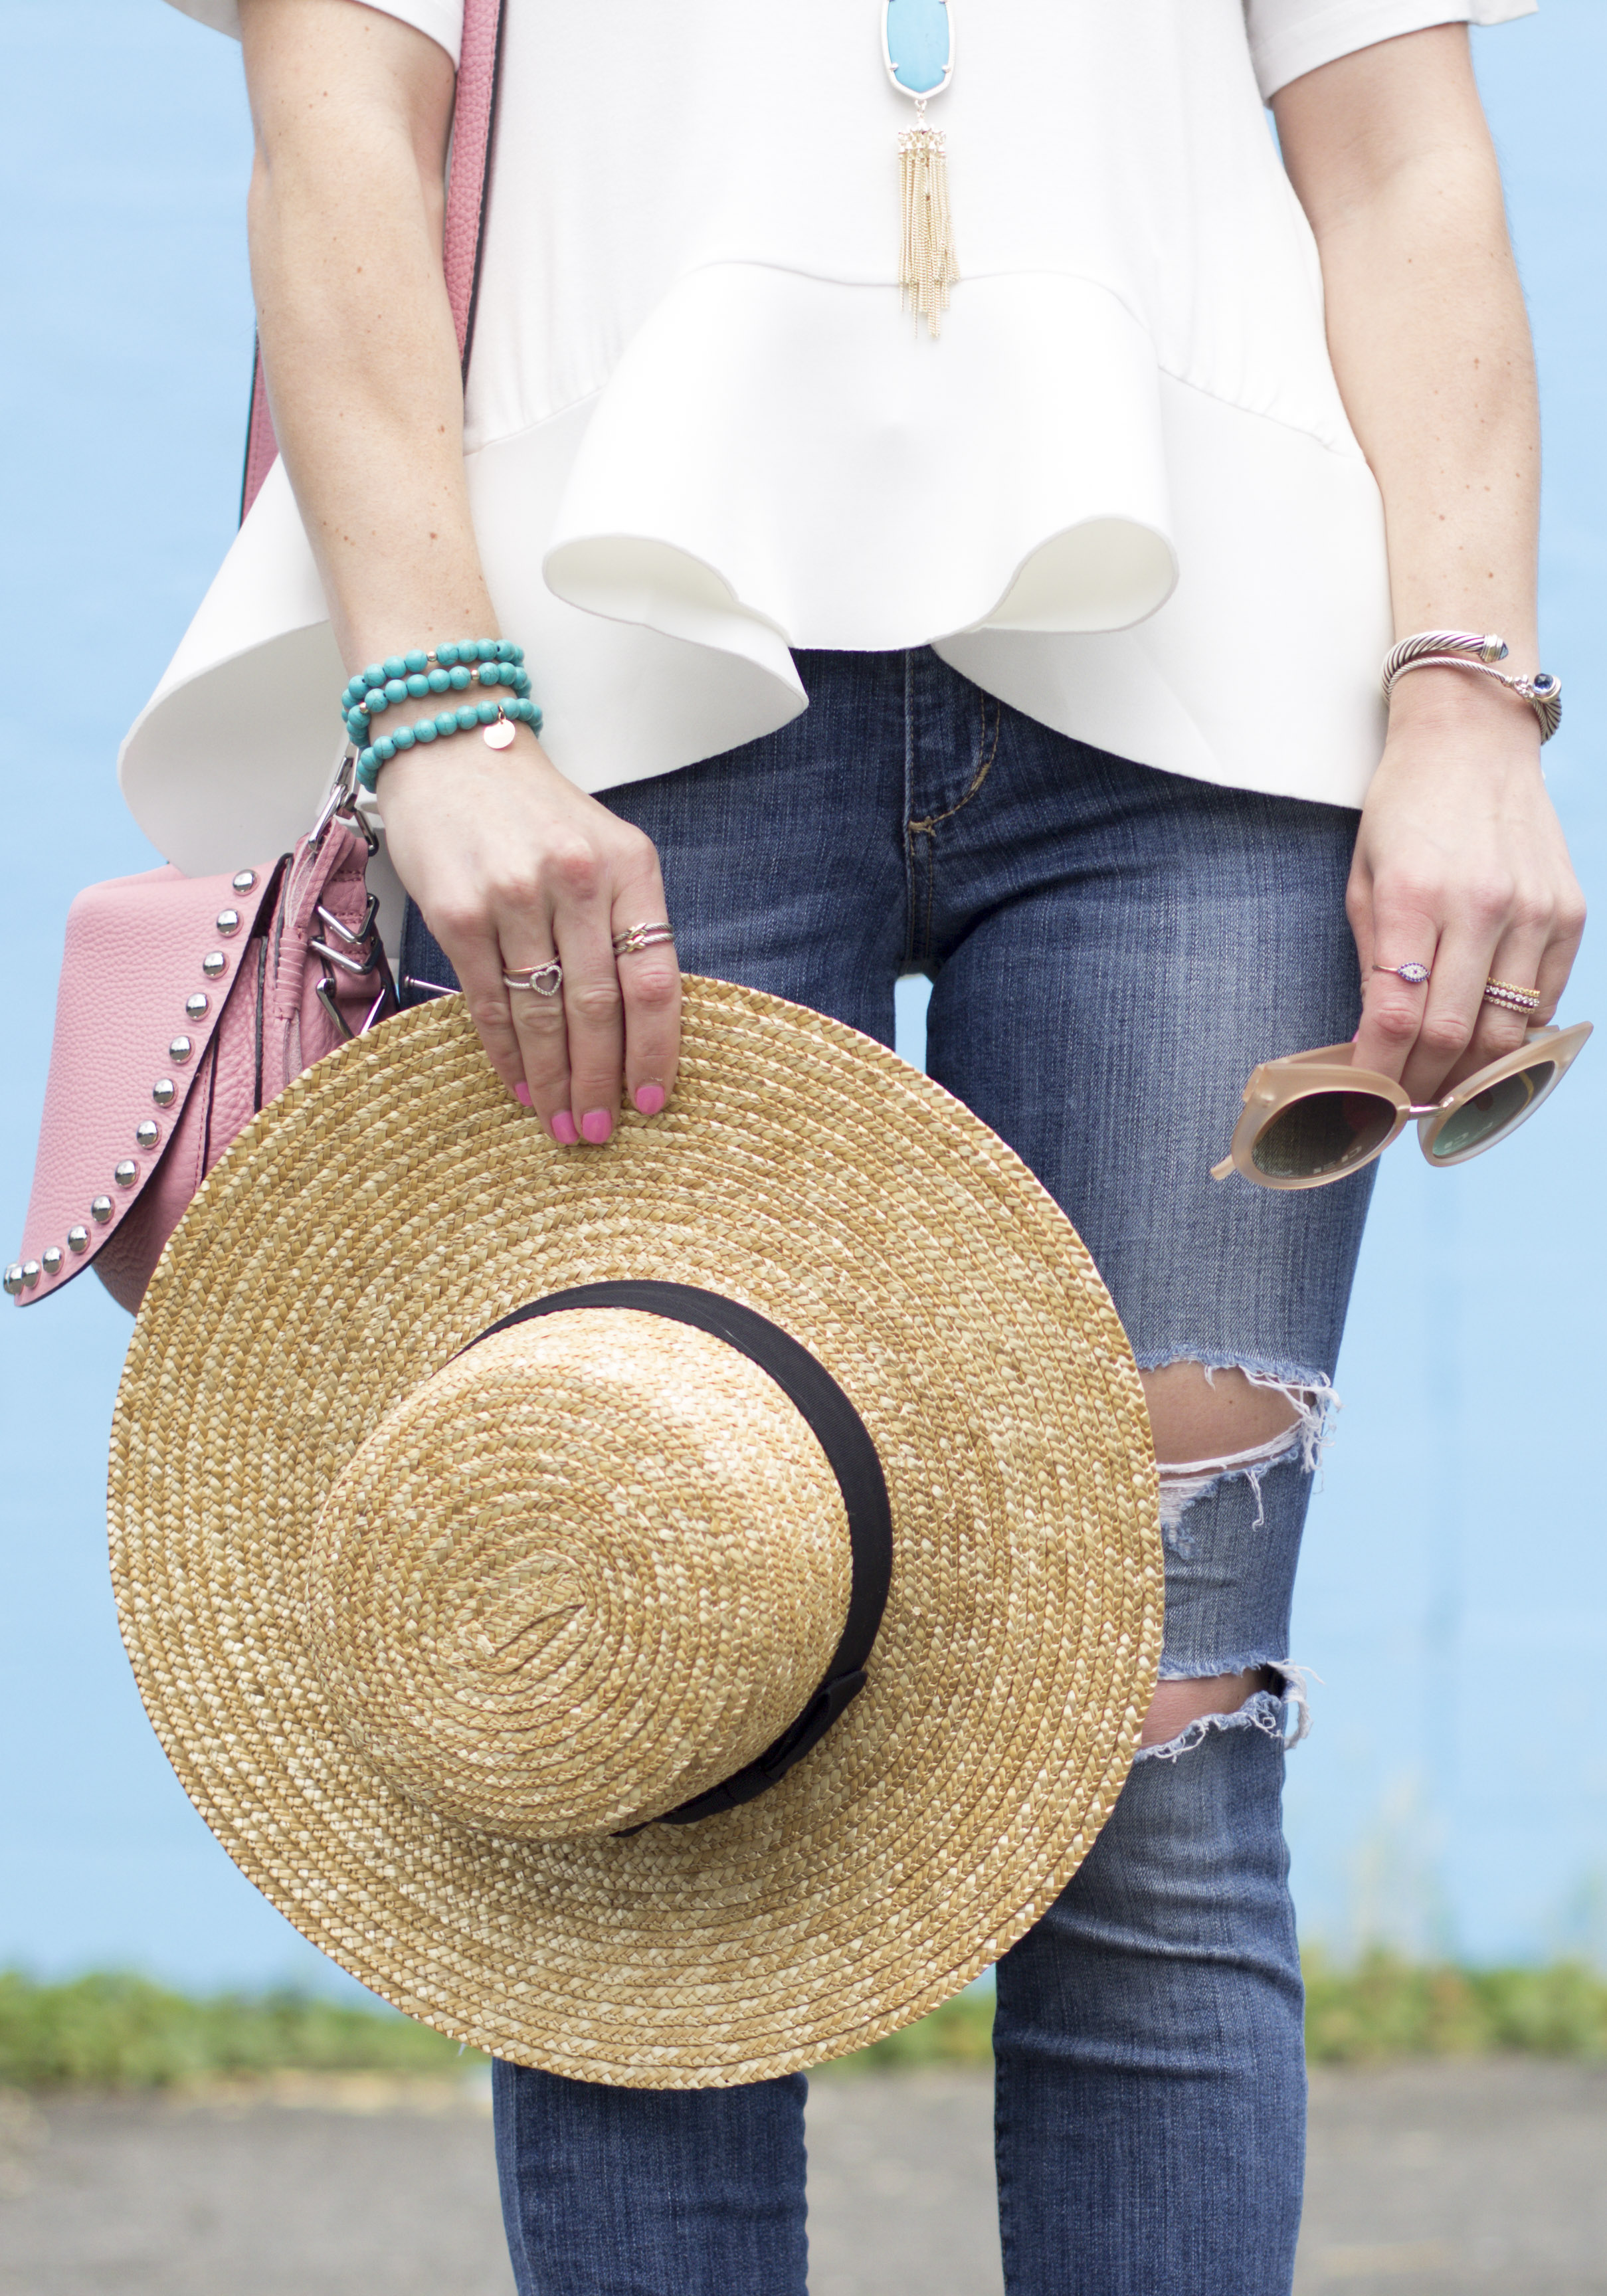 """Flattering T-Shirt for All Body Types, English Factory Flounce Tee, Joe's Jeans """"The Icon"""" Skinny, Rebecca Minkoff Unlined Saddle Bag, San Diego Hat Co Boater Hat, Taudrey Turquoise Bracelets, Steve Madden Rizzaa Sandals, Cute Summer Outfits on Me & Mr. Jones!"""